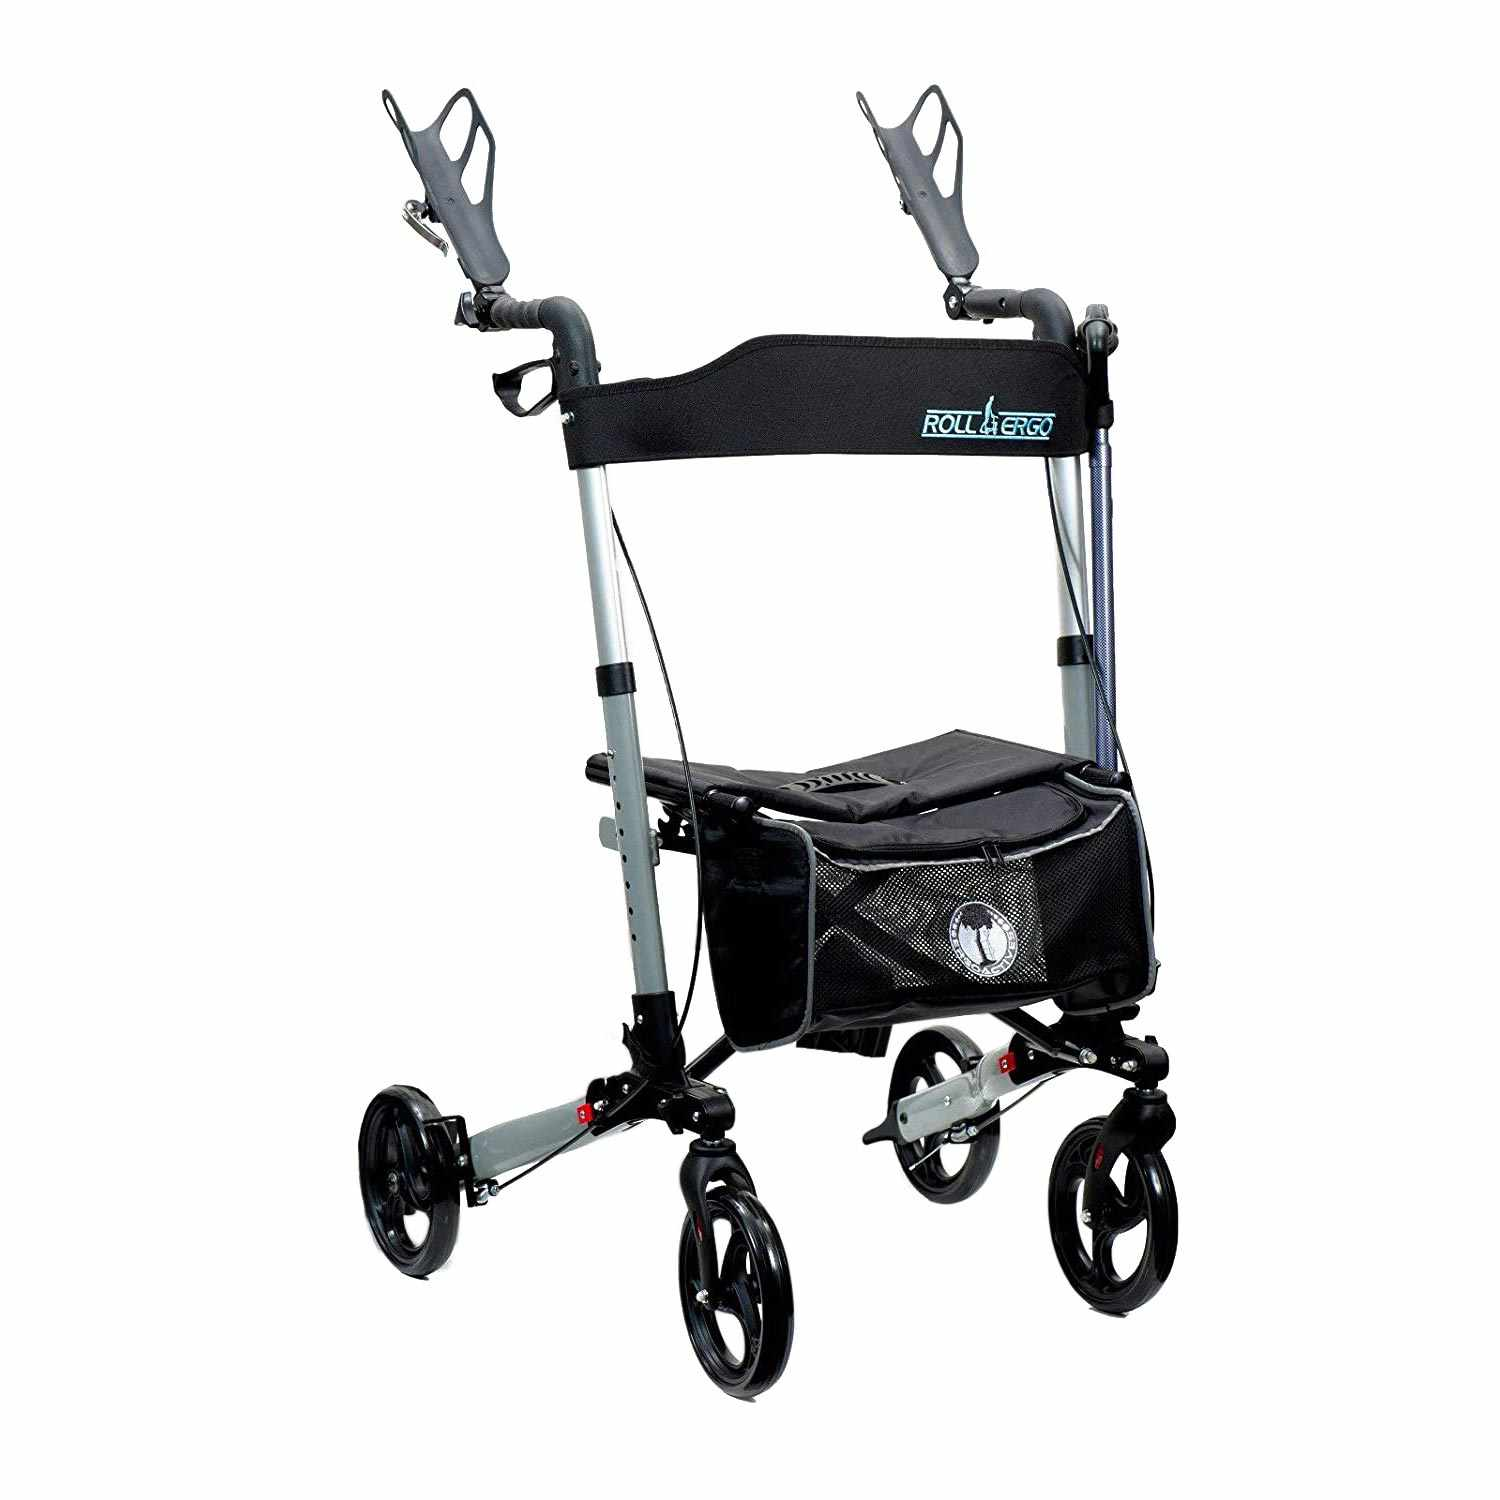 Ergoactives Roller-Go Double Foldable Walker With Forearm Support